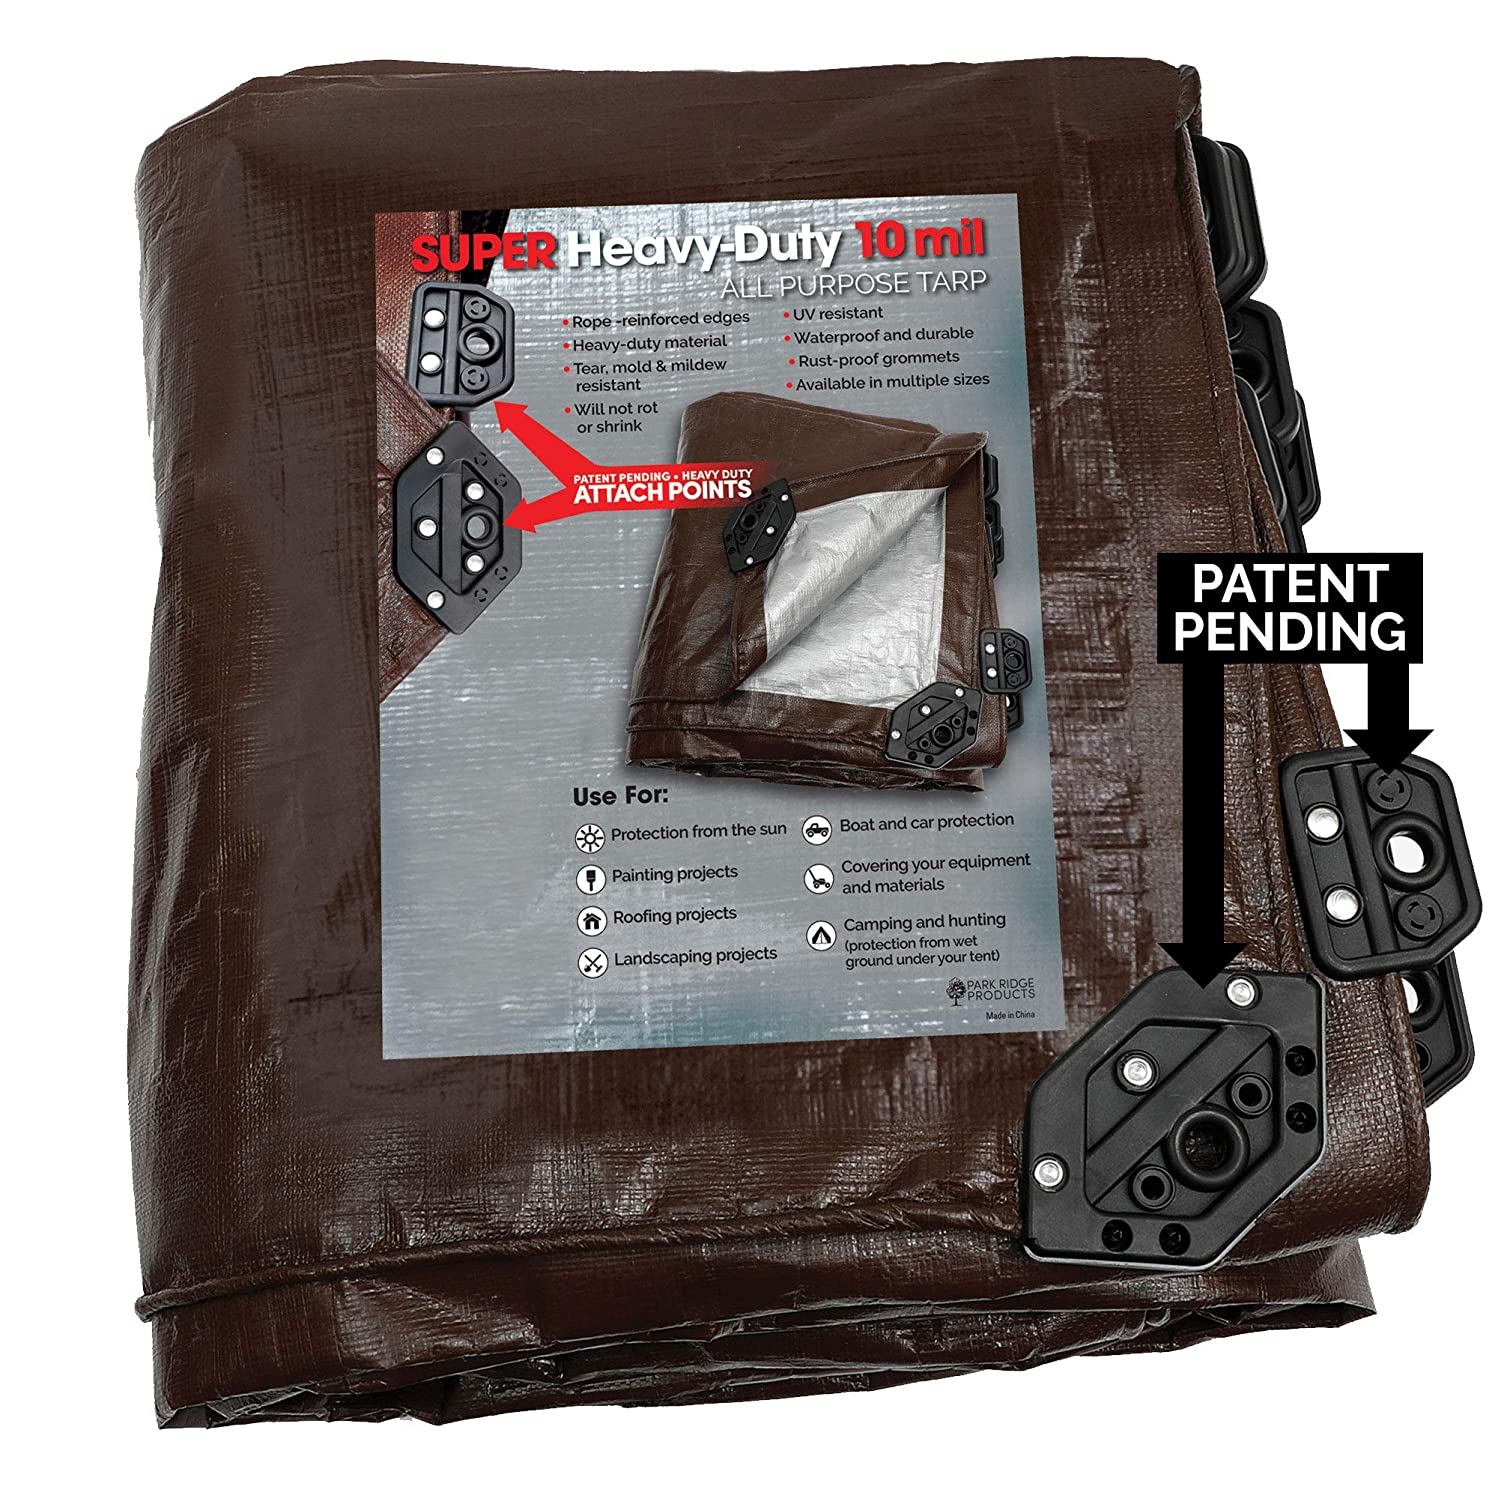 Park Ridge Products SCTRP1020 10 x 20 ft Heavy-Duty Brown/Silver Reversible Poly 10 mil Tarp Super Corner,